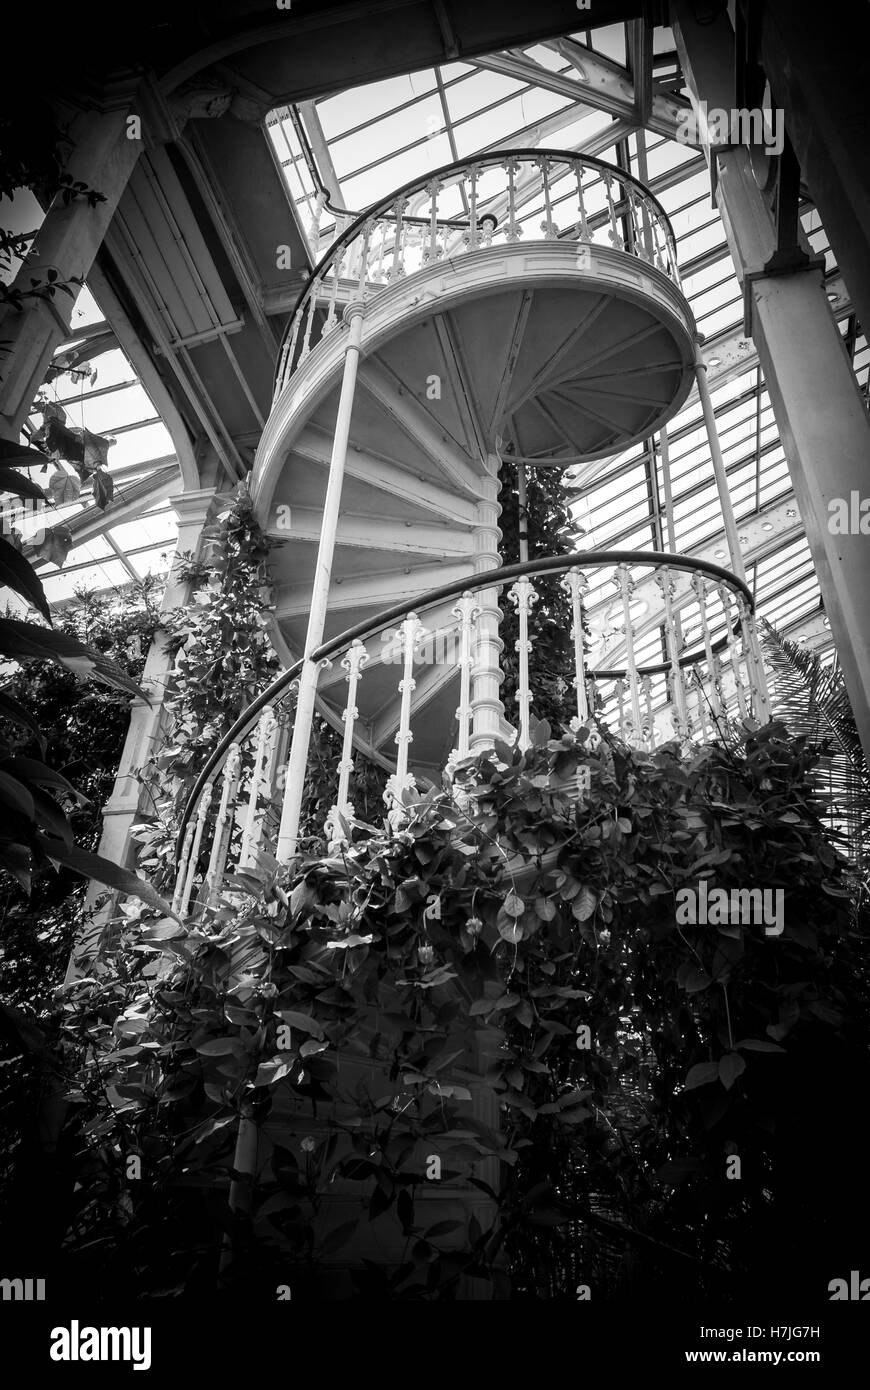 Staircase inside a Victorian greenhouse in Kew Gardens - Stock Image